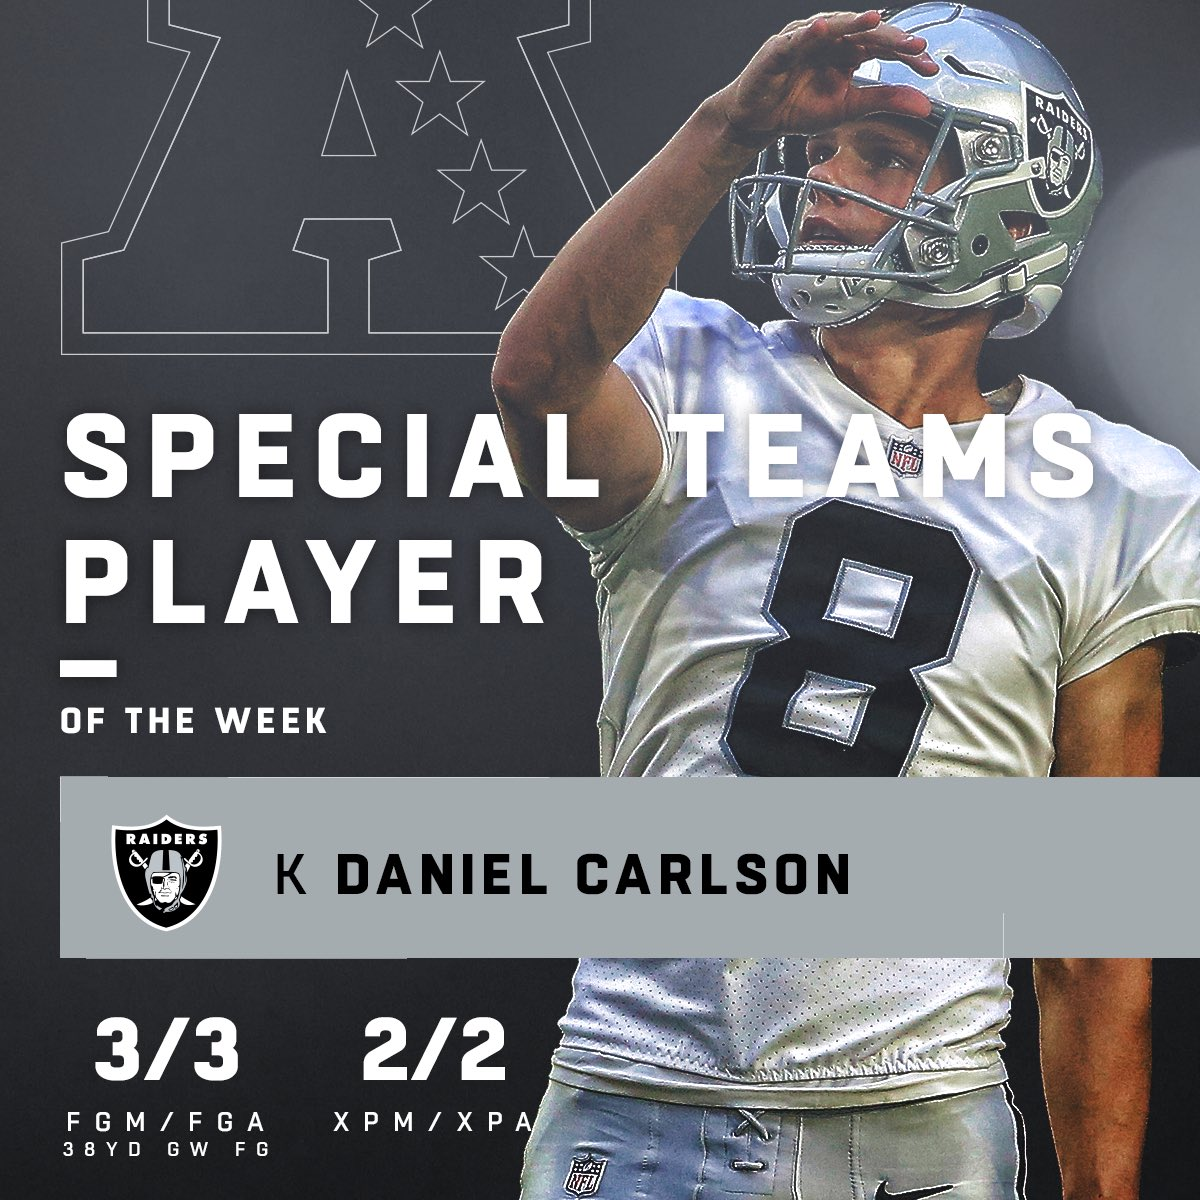 697418556bb Special Teams Players of the Week (Week 11): AFC: @Raiders K  @DanielCarlson38 NFC: @ChicagoBears K @CParkey36pic.twitter.com/fyT4jCLGNT